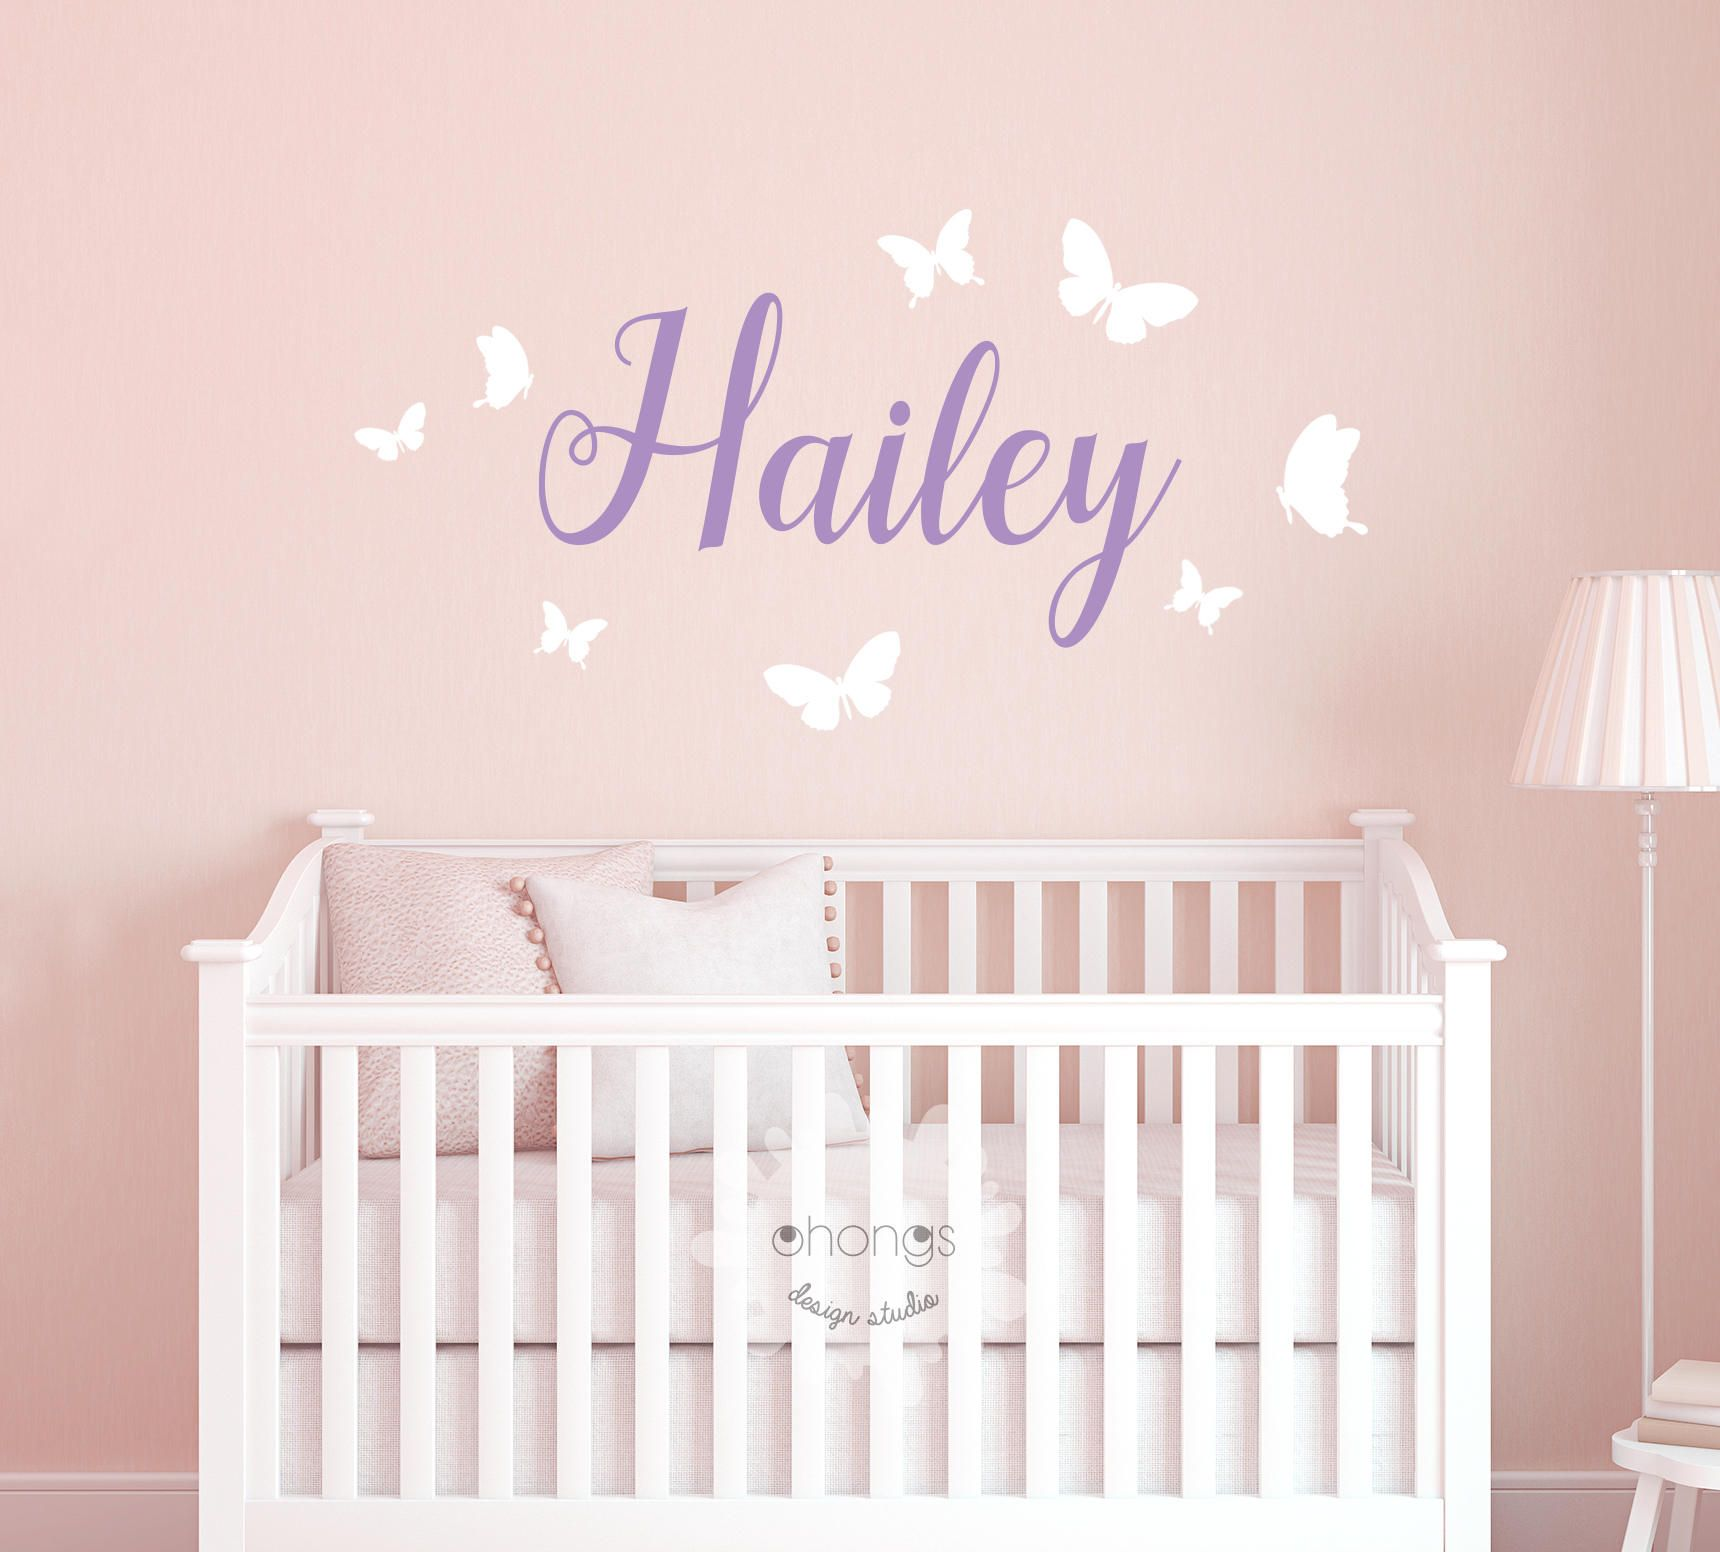 A Kids Room Decal Name Wall Decal Nursery Decal Custom Name Sticker Personalized Wall Decal Bab In 2020 Kids Room Decals Nursery Wall Decals Name Wall Decals